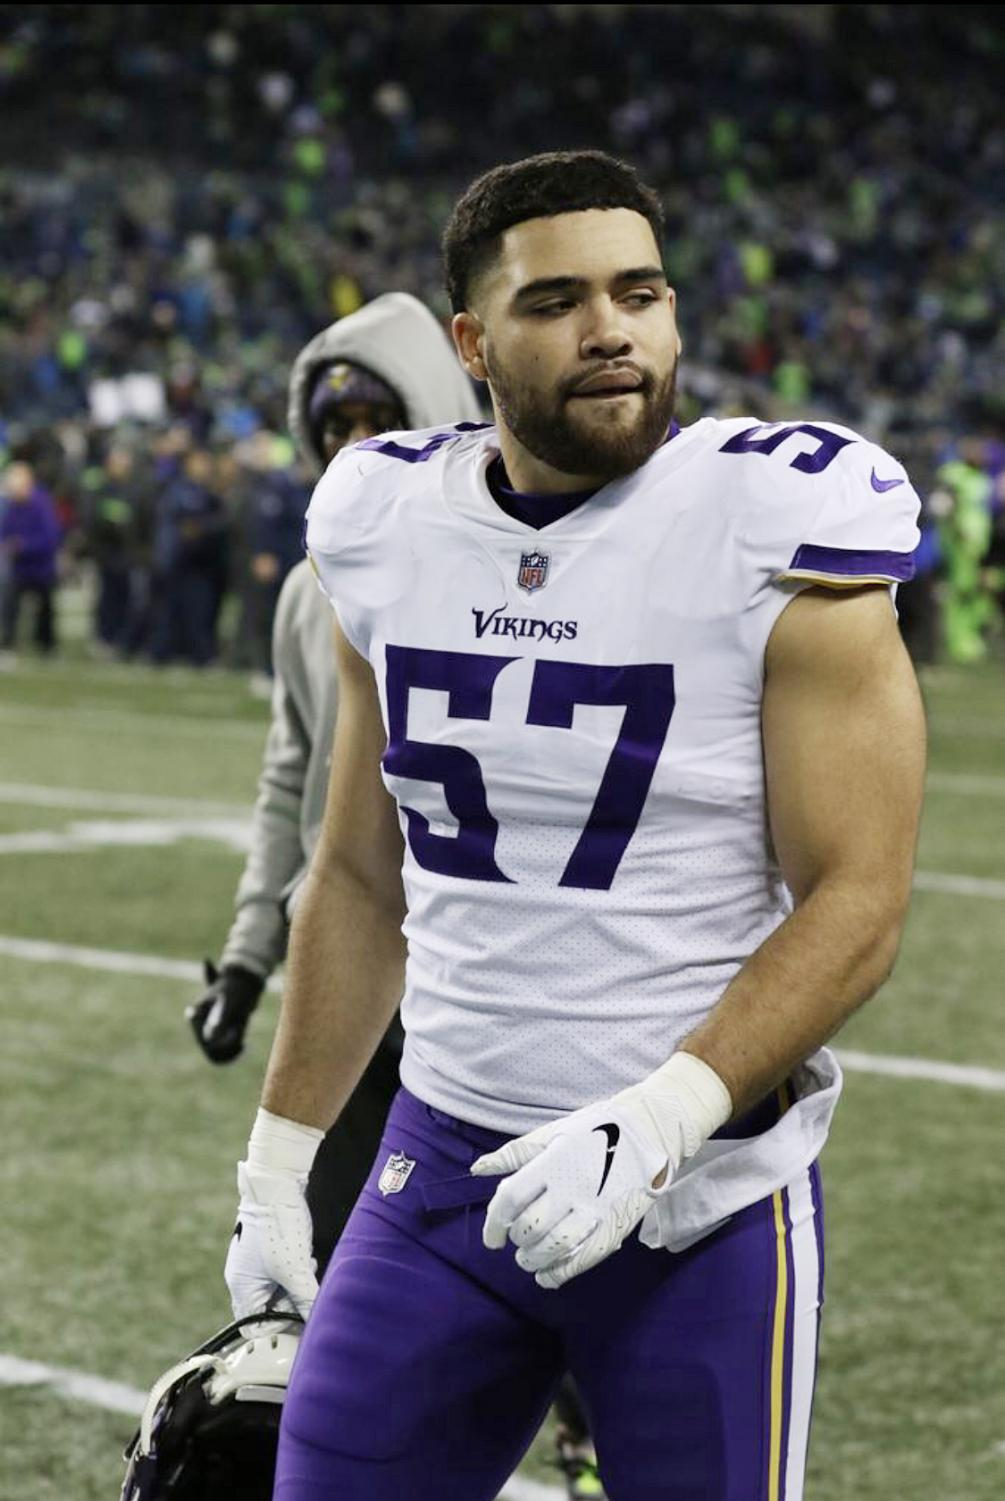 A rookie for the Minnesota Vikings, Devante Downs (MTHS '14) was an incredible two-way player for the Hawks. He played special teams in the Vikings 21-7 loss to the Seahawks on Monday Night Football, Dec. 10 at Century Link Field.